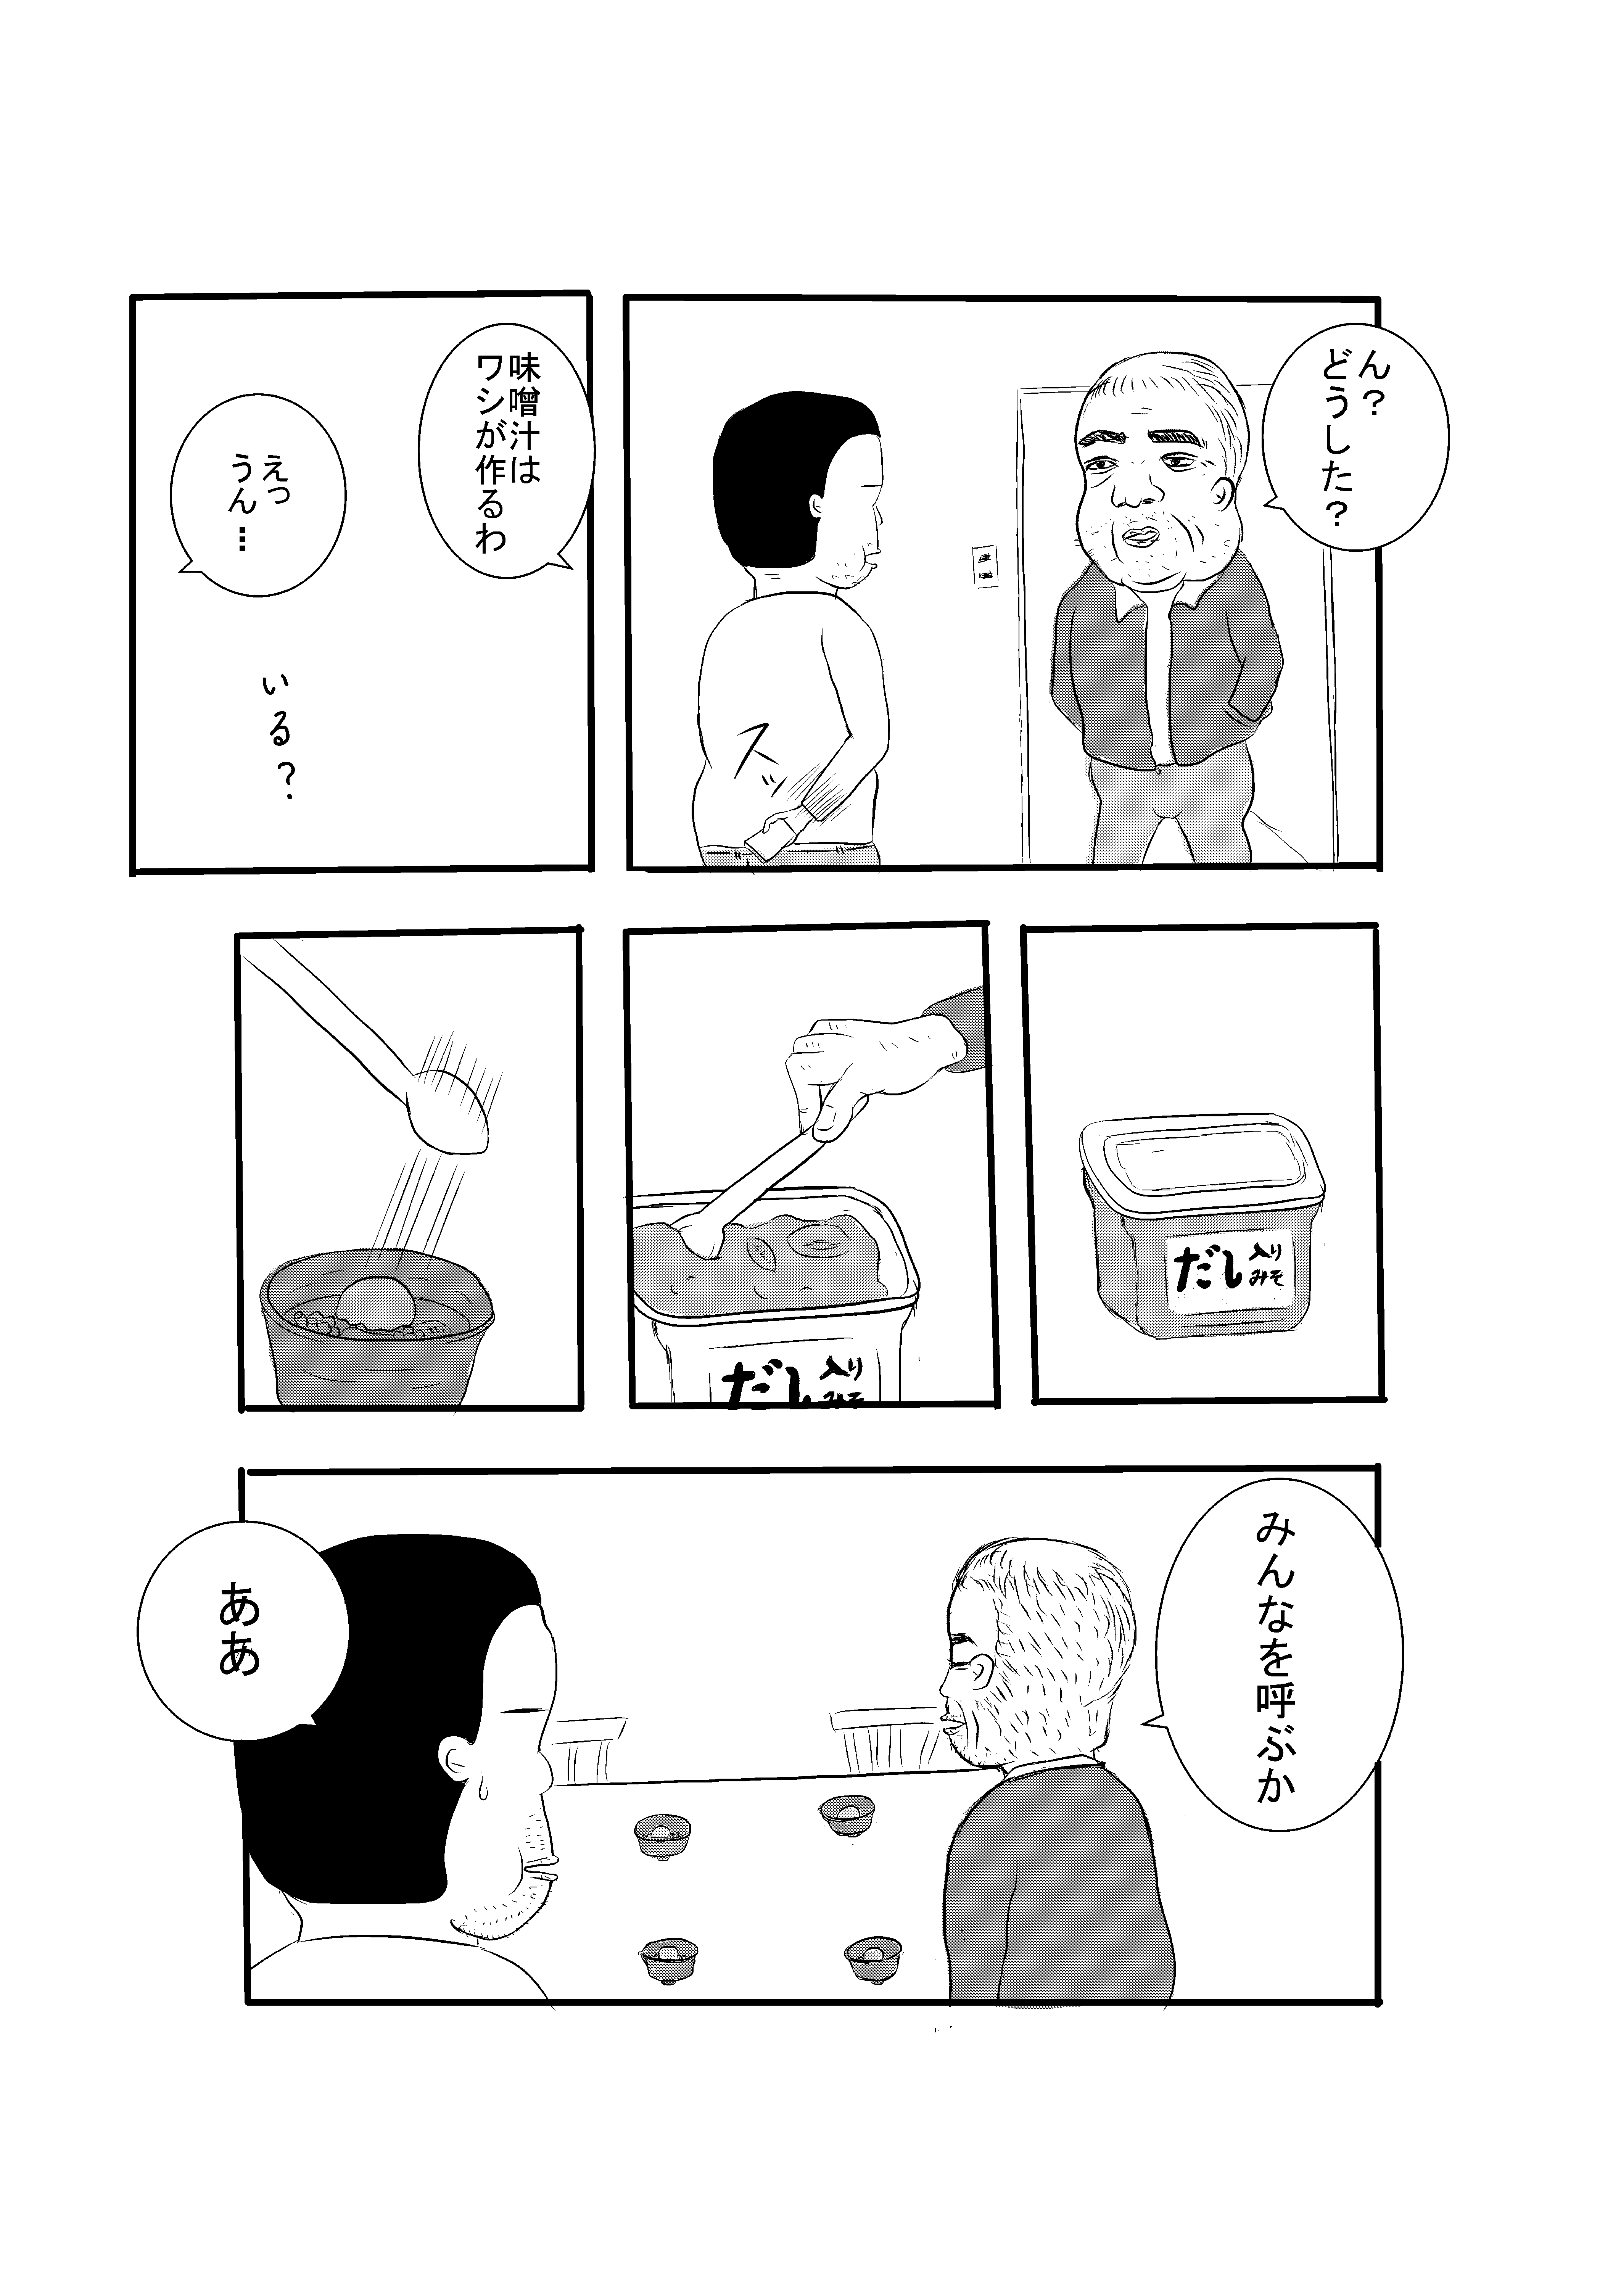 20180113224302148.png